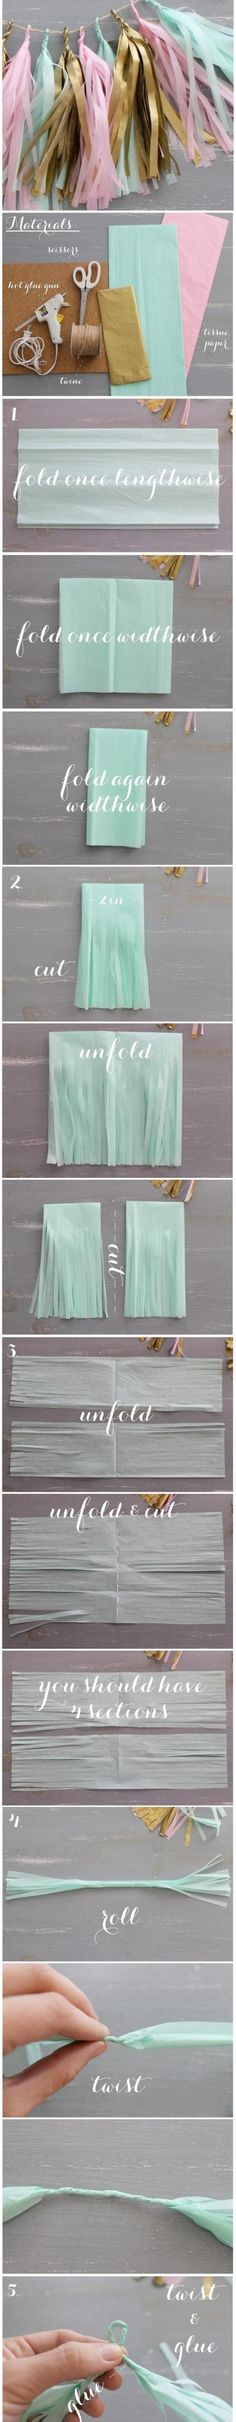 10 DIY Party Crafts DIY Tassel Garland in pretty pastels. Perfect for any celebration from baby showers to first birthday parties.DIY Tassel Garland in pretty pastels. Perfect for any celebration from baby showers to first birthday parties. Unicorn Birthday Parties, First Birthday Parties, Girl Birthday, First Birthdays, Birthday Diy, Birthday Gifts, Birthday Candles, Birthday Celebration, Birthday Garland